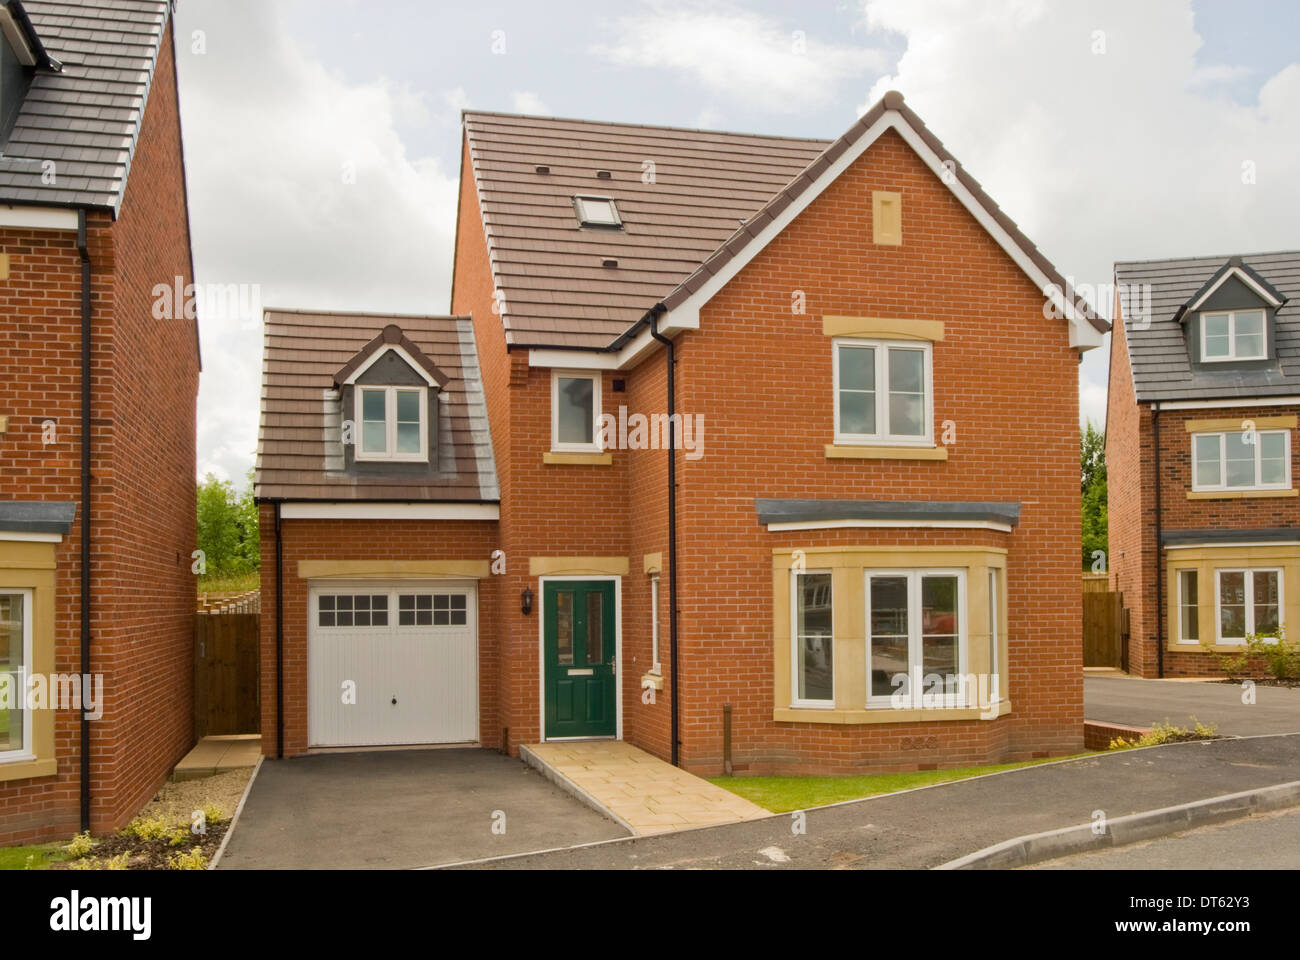 New build red brick detached house Stock Photo